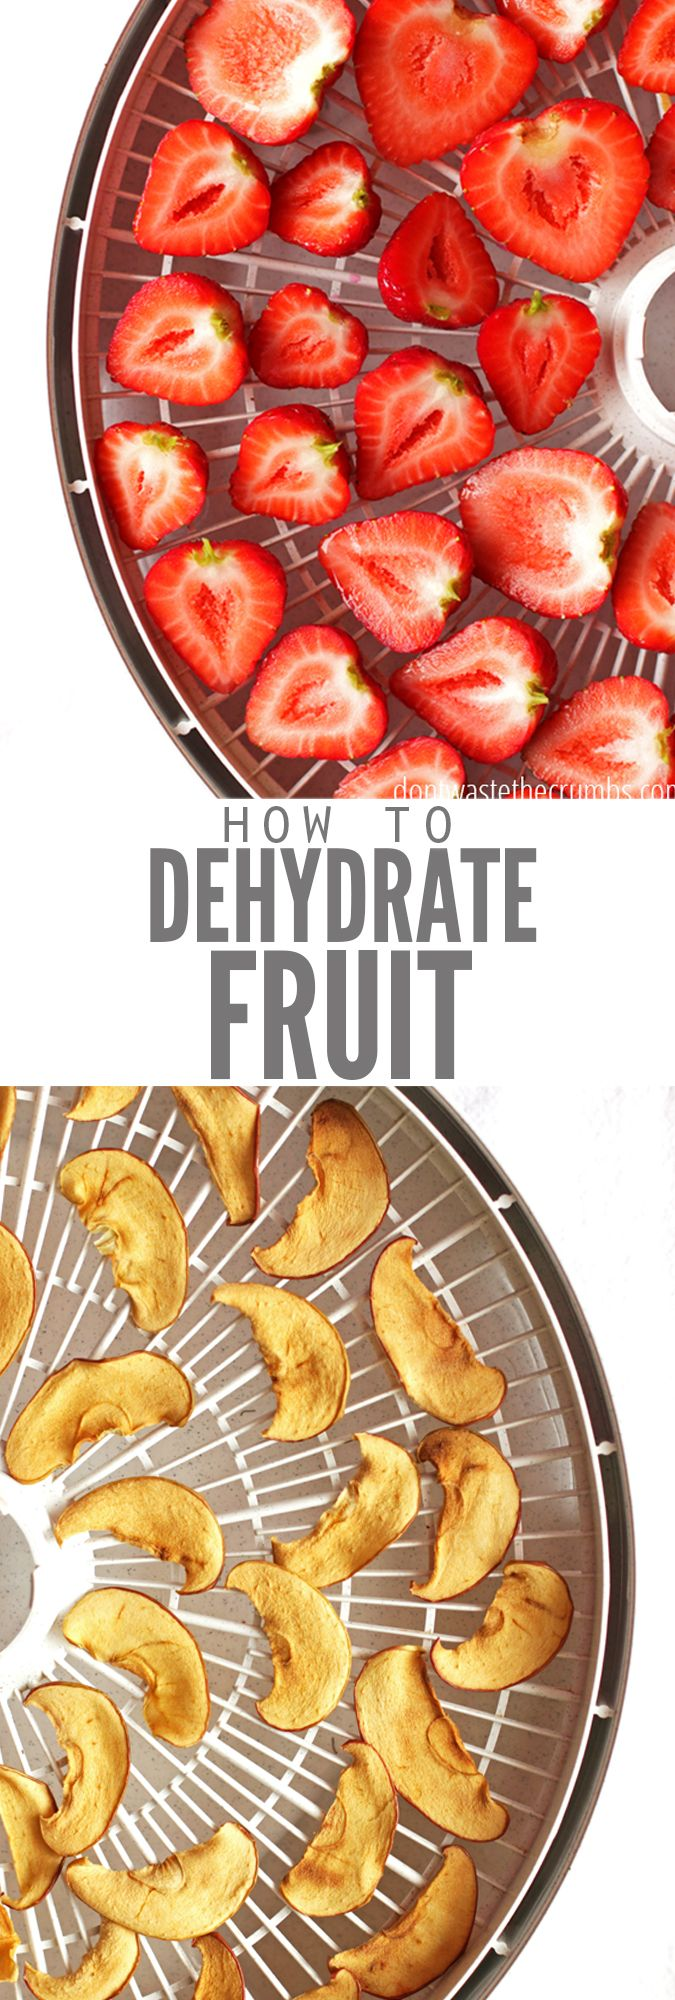 How to Dehydrate Fruit - Grapes, Bananas, Blueberries, Strawberries, Peaches, Mangos It's like fruit candy! Easy DIY tutorial for how to dehydrate fruit in dehydrator, including recipes for apples, strawberries, bananas, peaches, mango, grapes, persimmon, pineapple and blueberries. Making your own dehydrated fruit is a great way to save money too! Some like fruit roll ups or fruit leather, but my favorite is whole fruit, it's almost like fruit gummies!